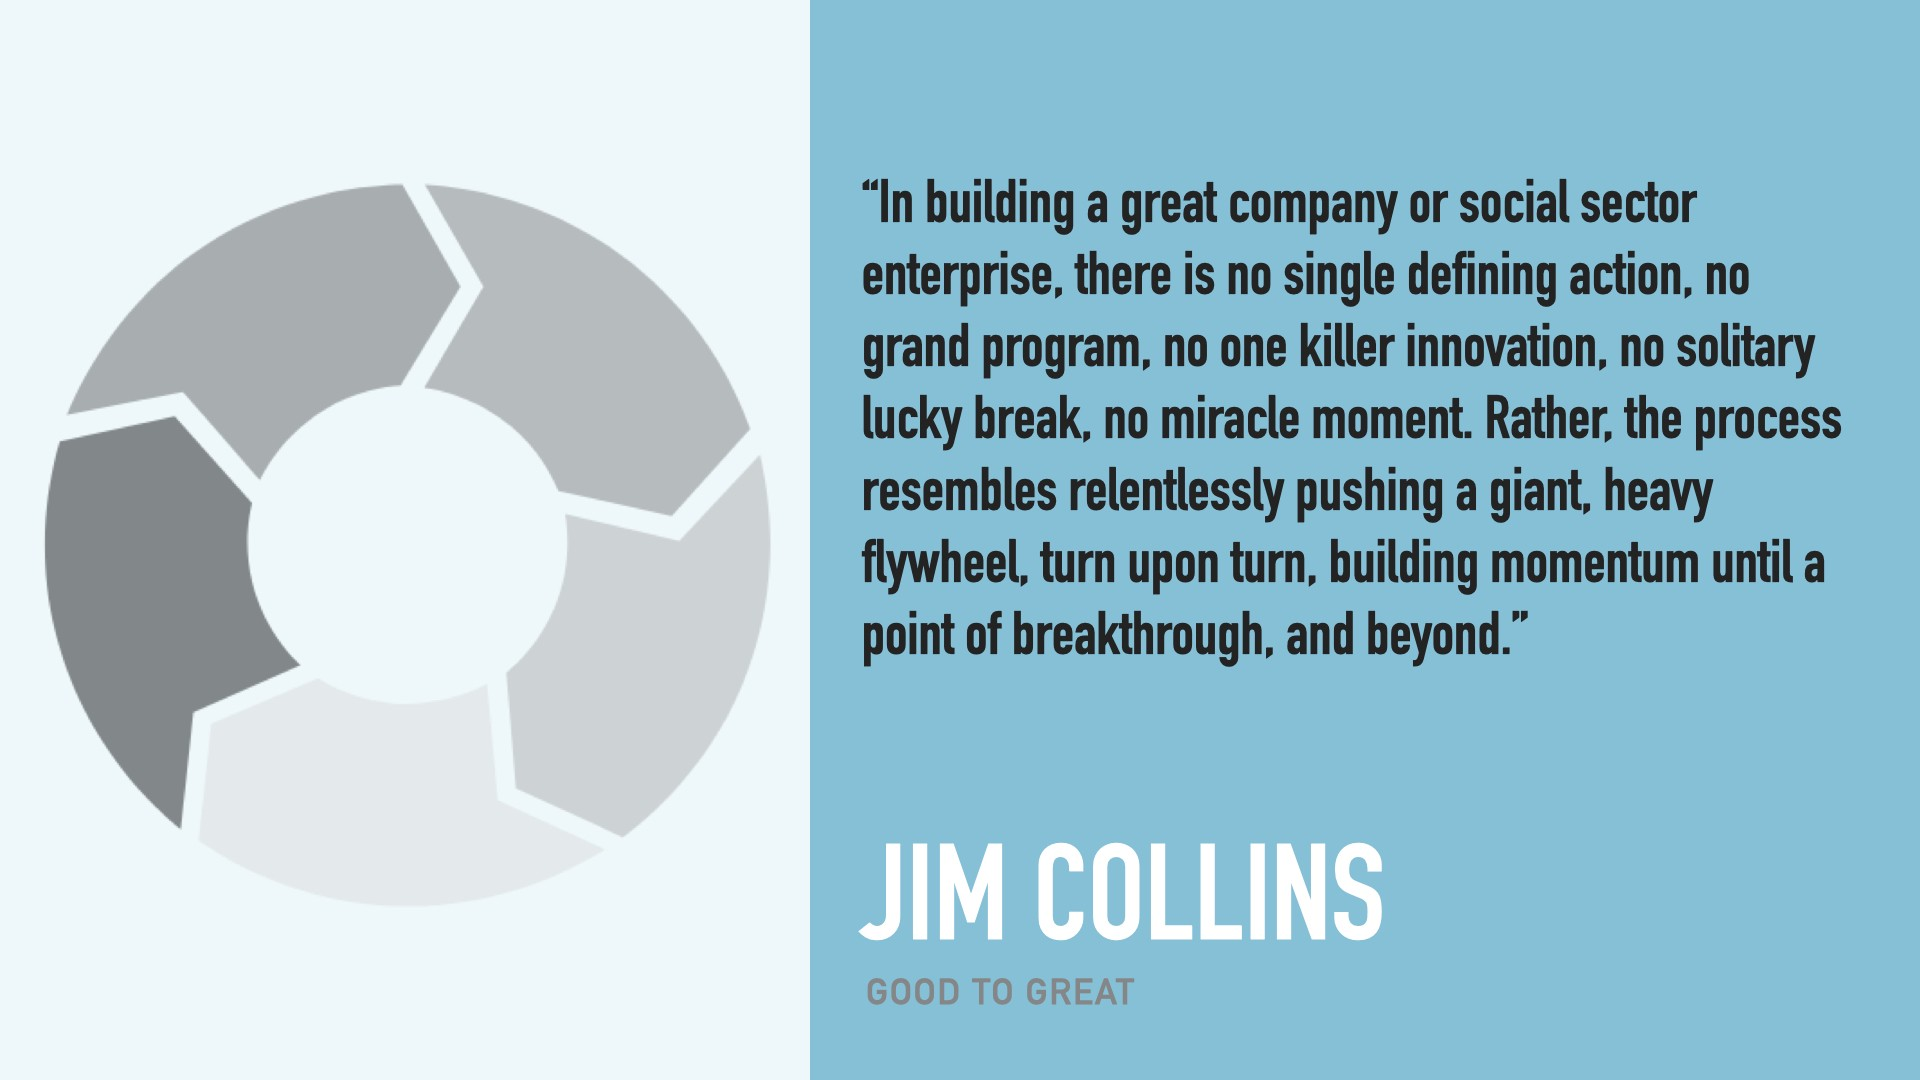 """Jim Collins flywheel definition: """"In building a great company or social sector enterprise, there is no single defining action, no grand program, no one killer innovation, no solitary lucky break, no miracle moment. Rather, the process resembles relentlessly pushing a giant, heavy flywheel, turn upon turn, building momentum until a point of breakthrough, and beyond."""""""